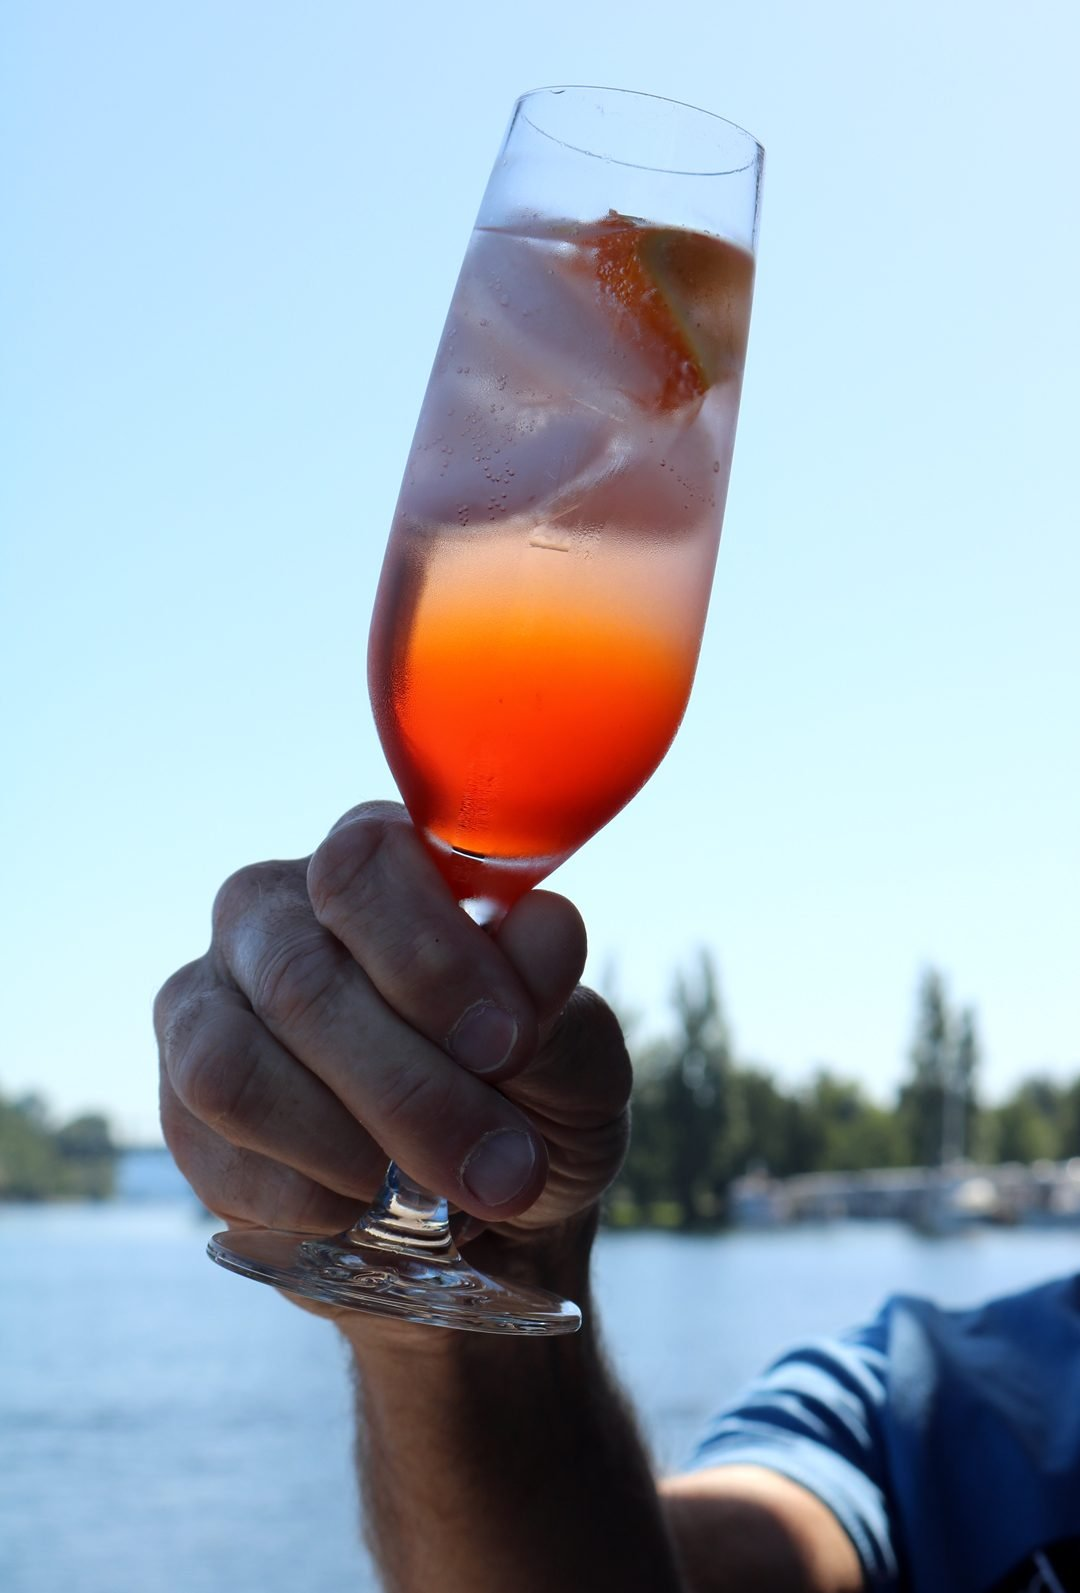 A chilled flute of aperol spritz held in the air with a water scene in the background.